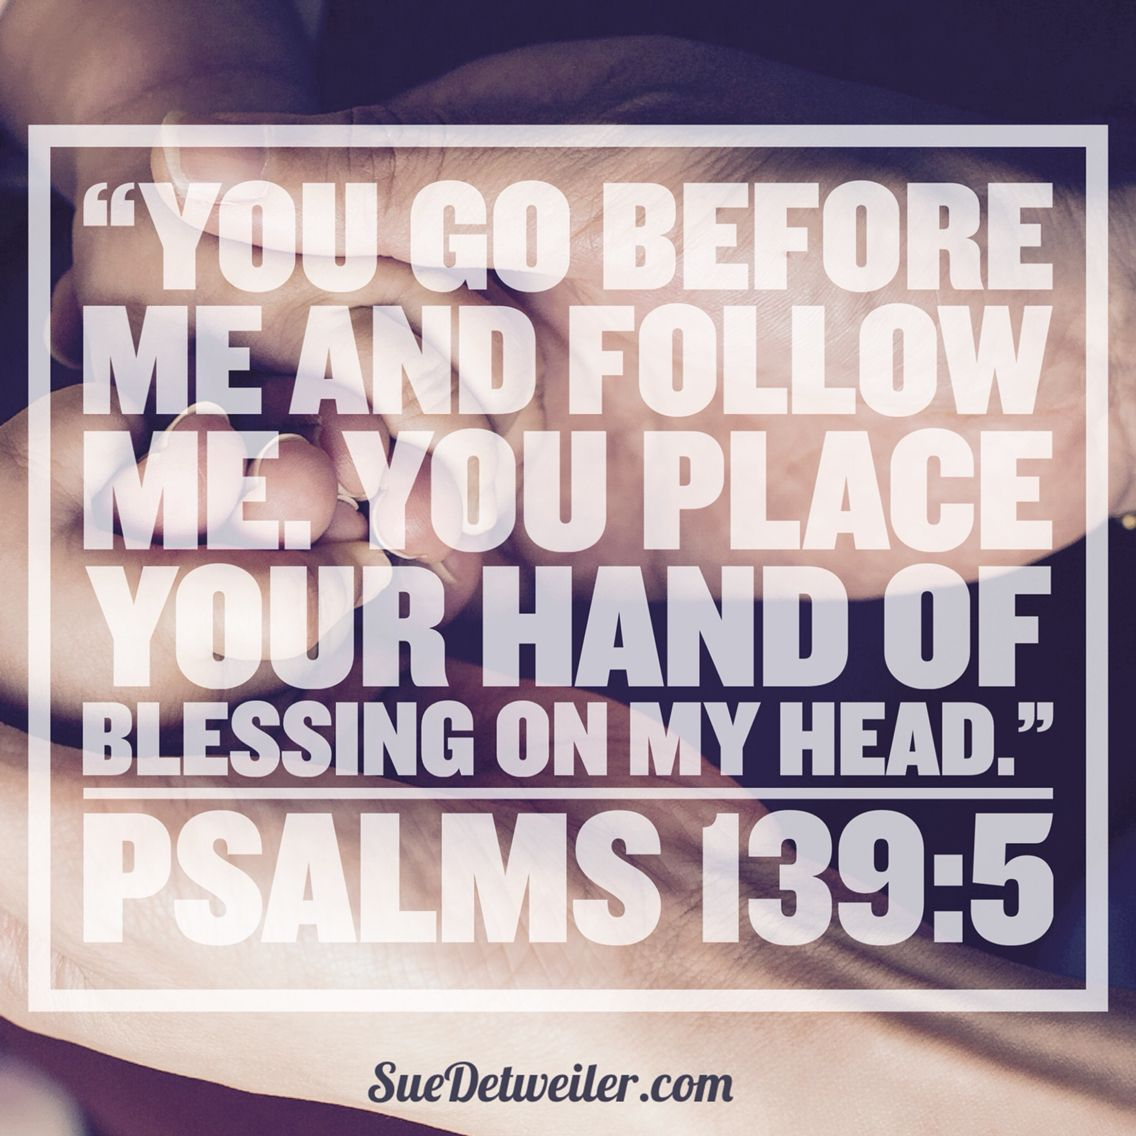 """""""You go before me and follow me. You place your hand of blessing on my head."""" Psalms 139:5 """